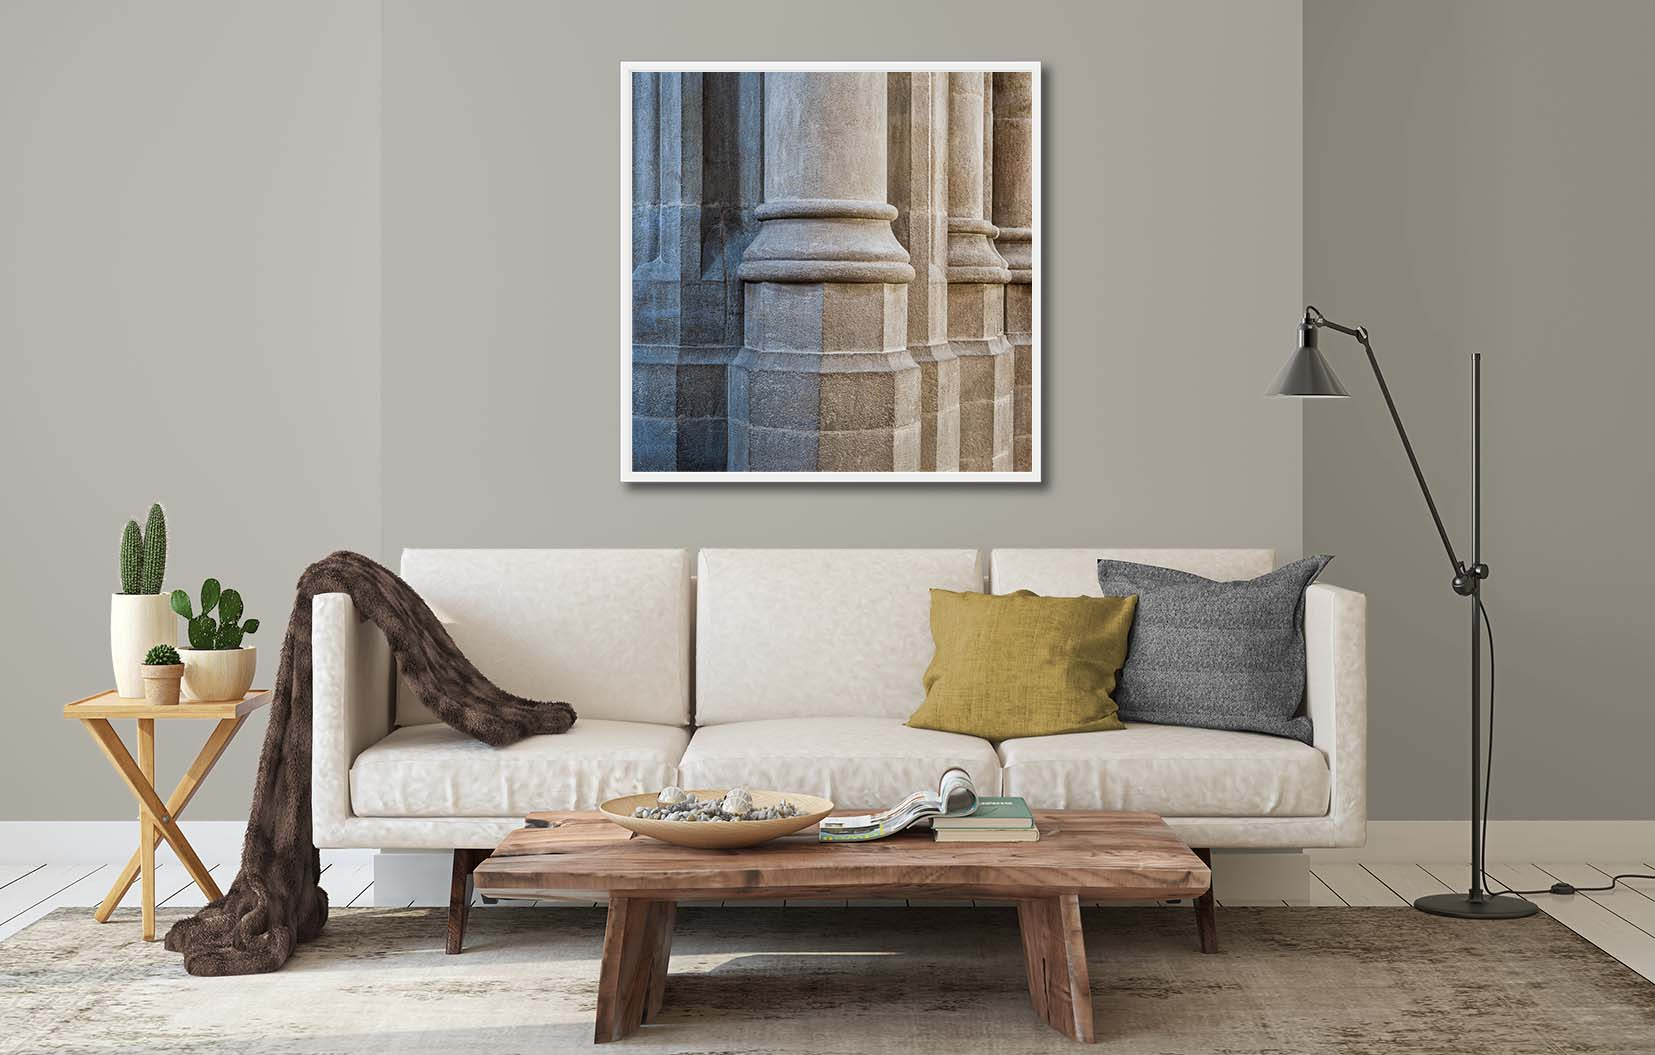 Stonecraft VII. Abstract study of stonecraft showing stone columns. Limited edition photographic prints by fine art photographer Paul Coghlin FBIPP.